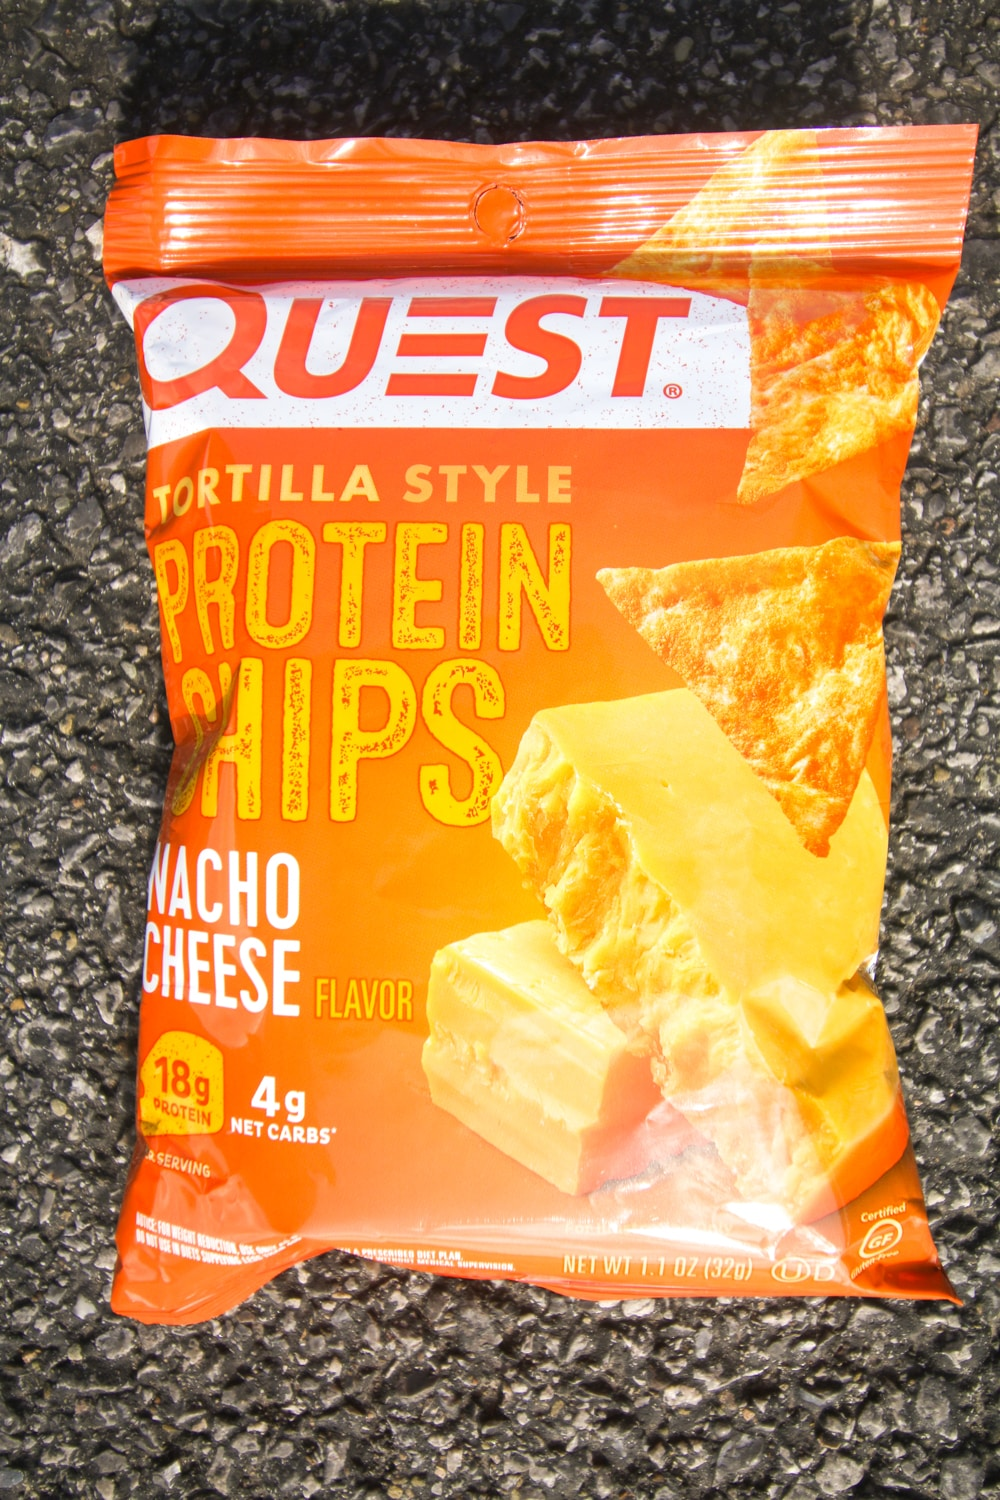 A bag of quest nacho cheese protein chips.